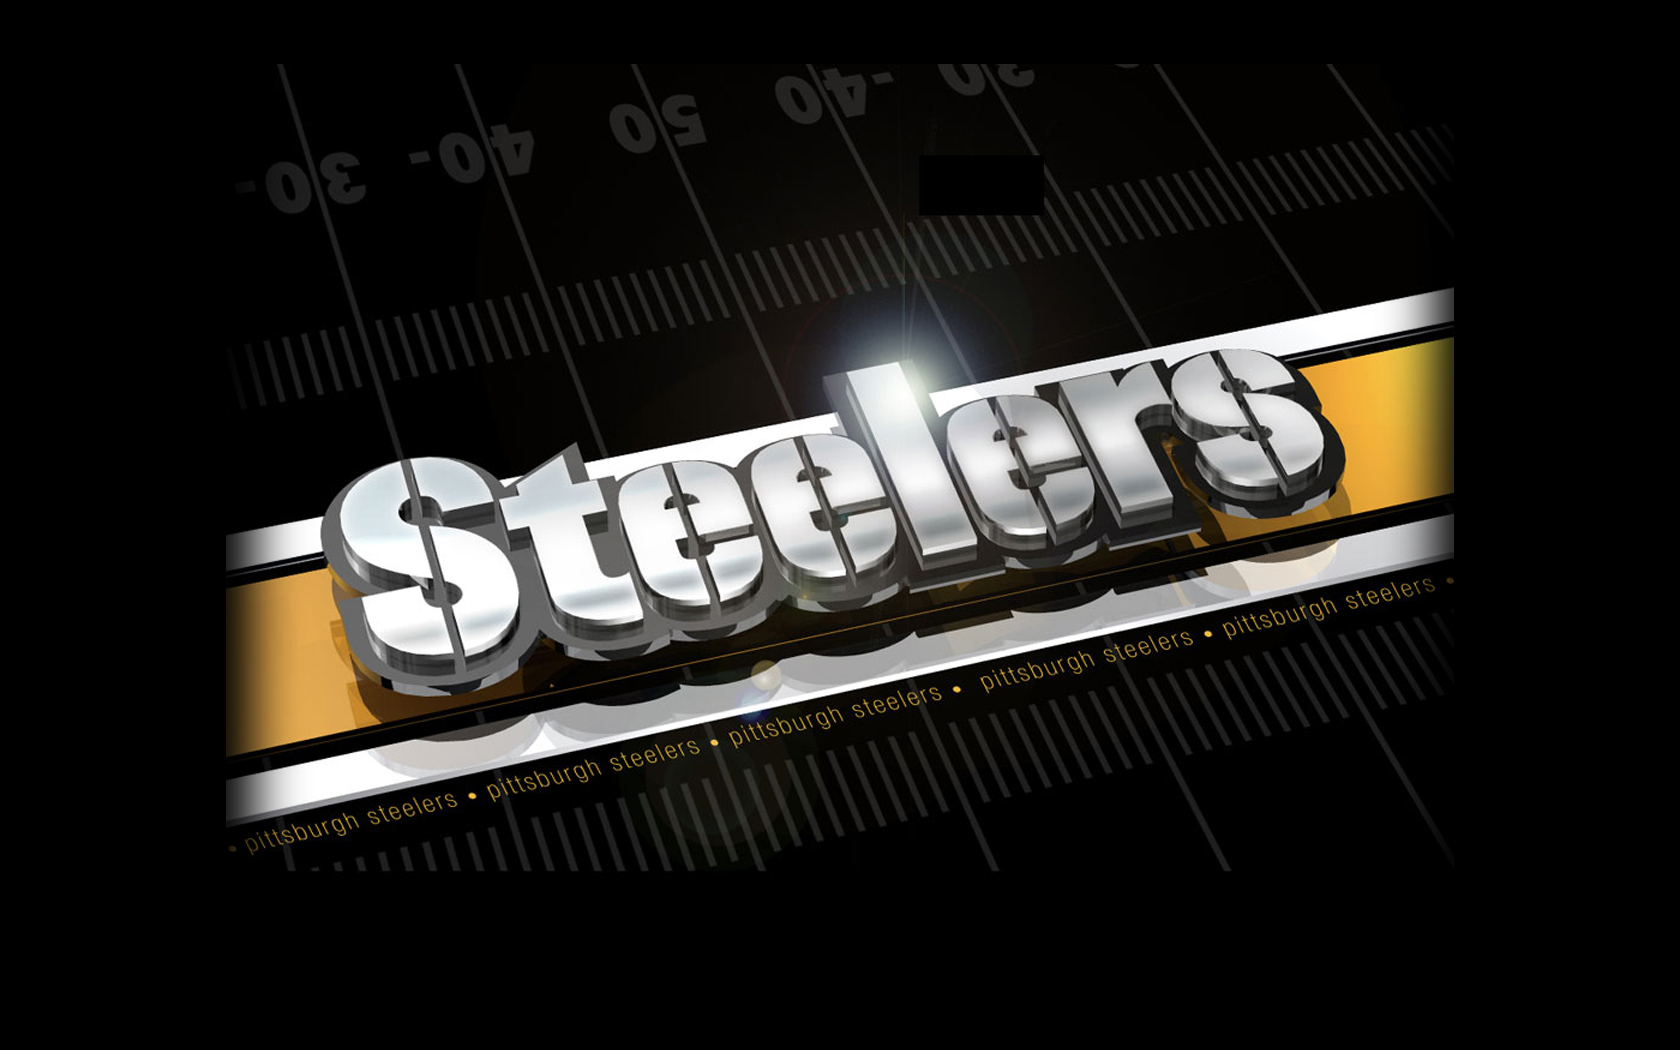 1680x1050 - Steelers Desktop 56